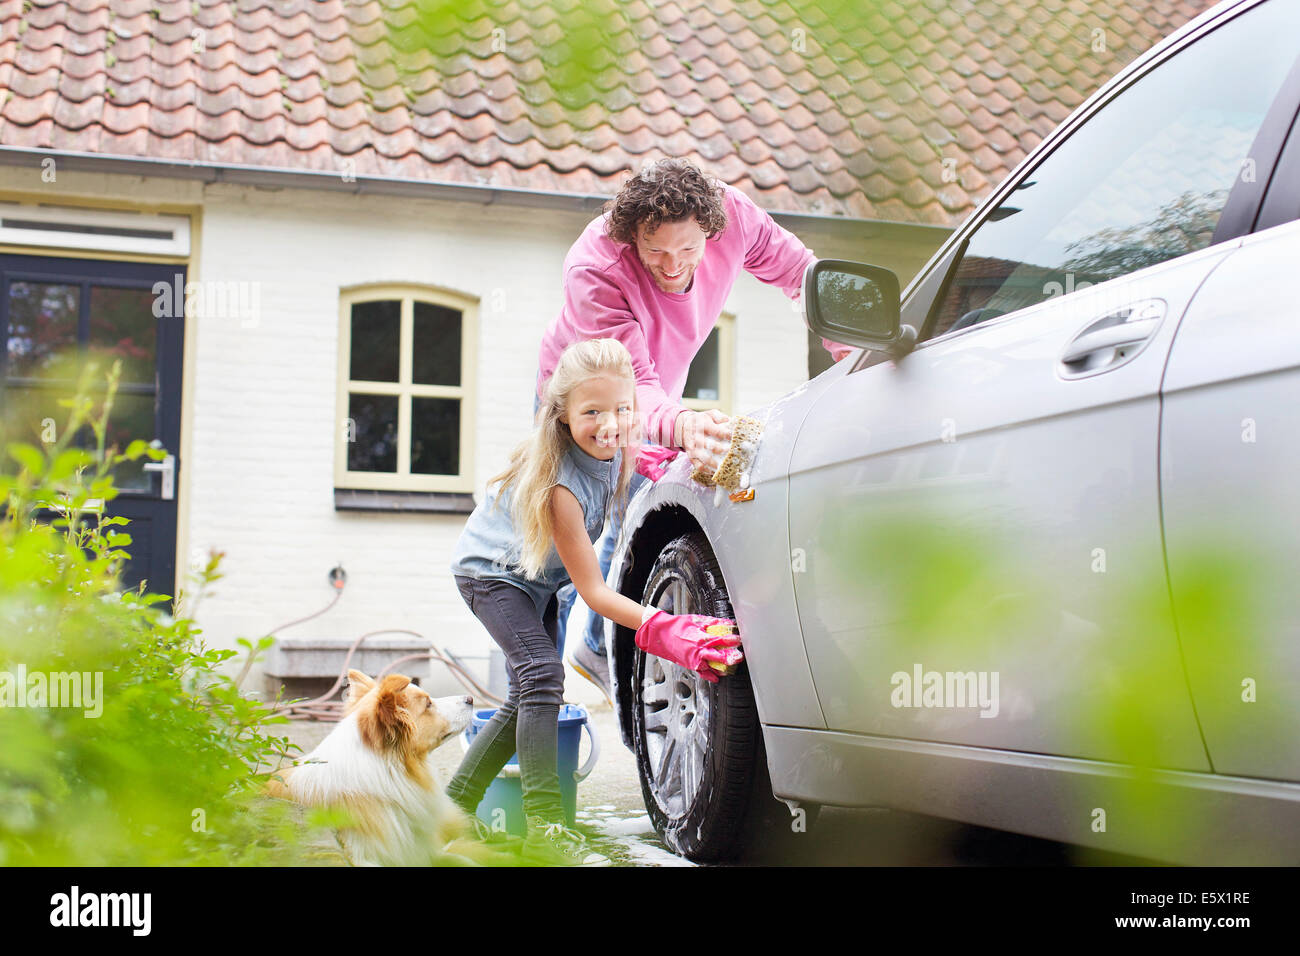 Girl helping father wash his car - Stock Image